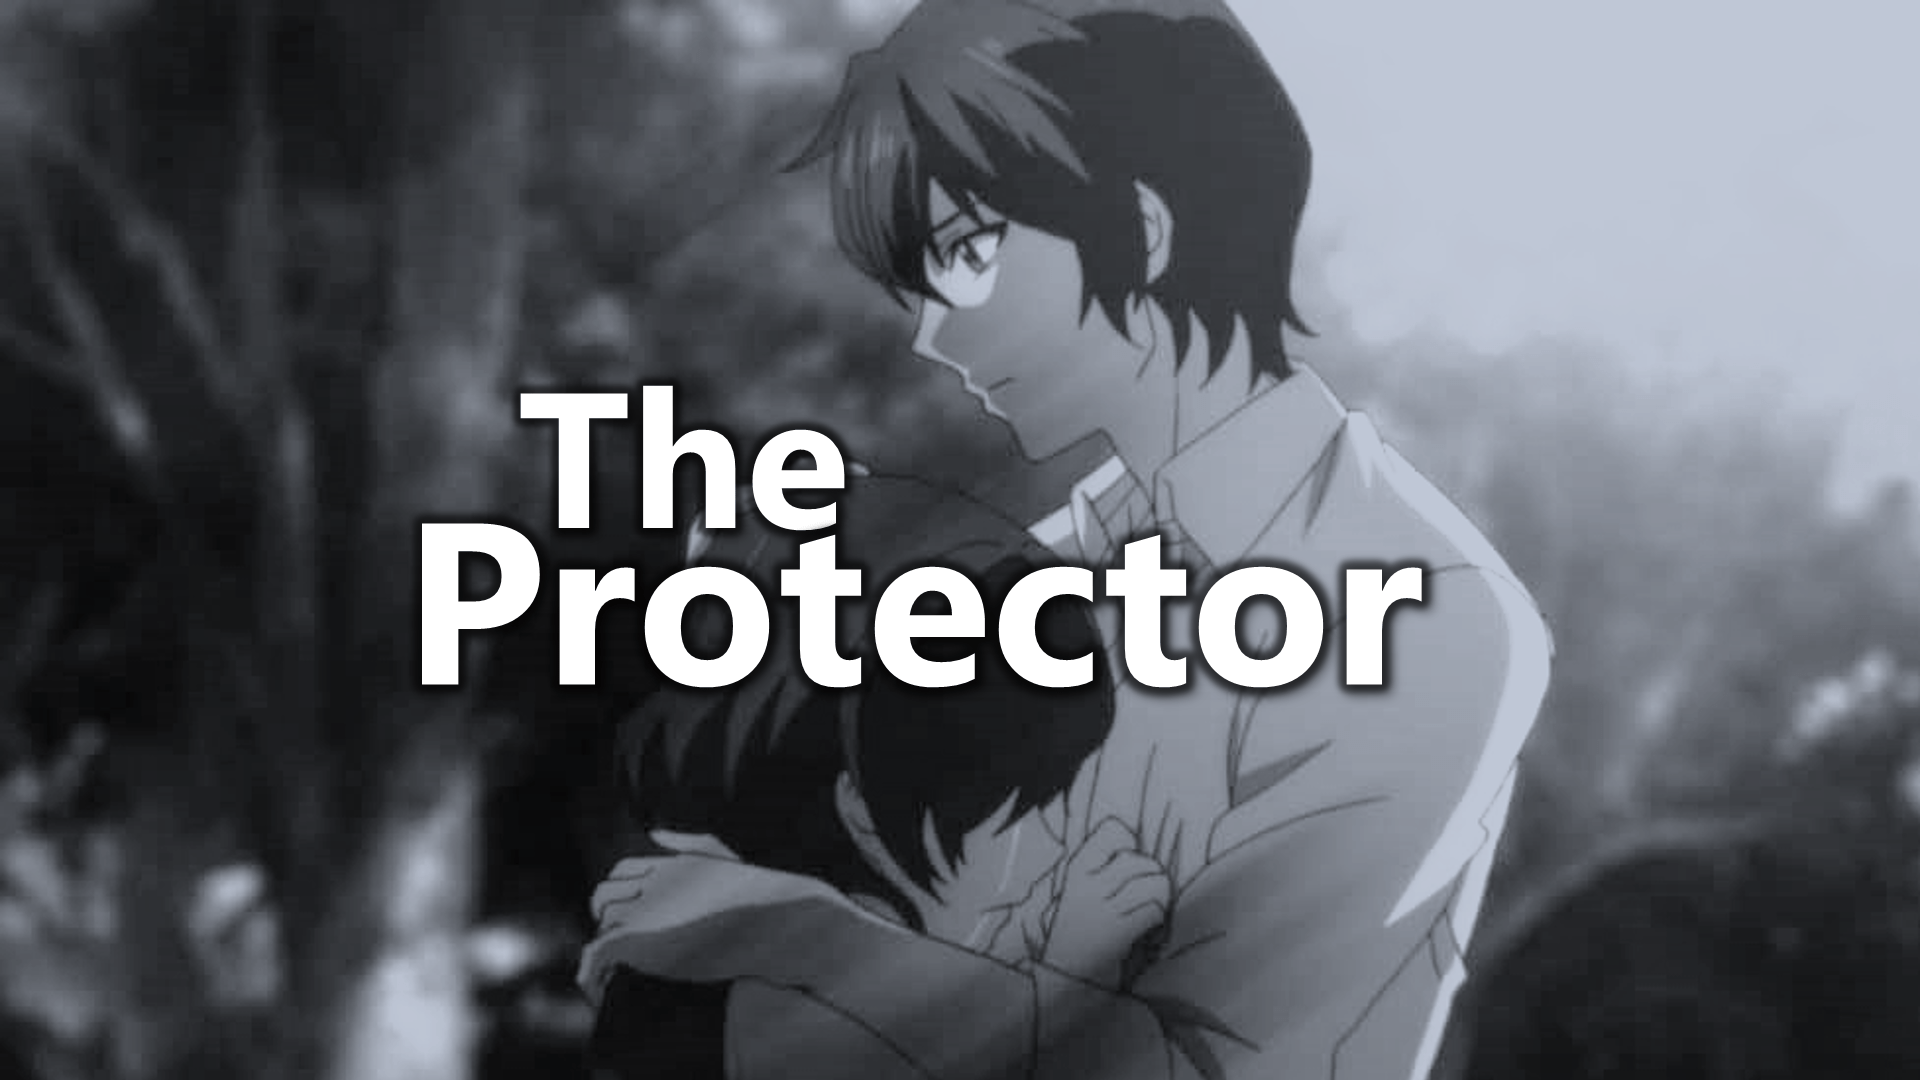 The Protector Novel Levi Garrison complete chapters link